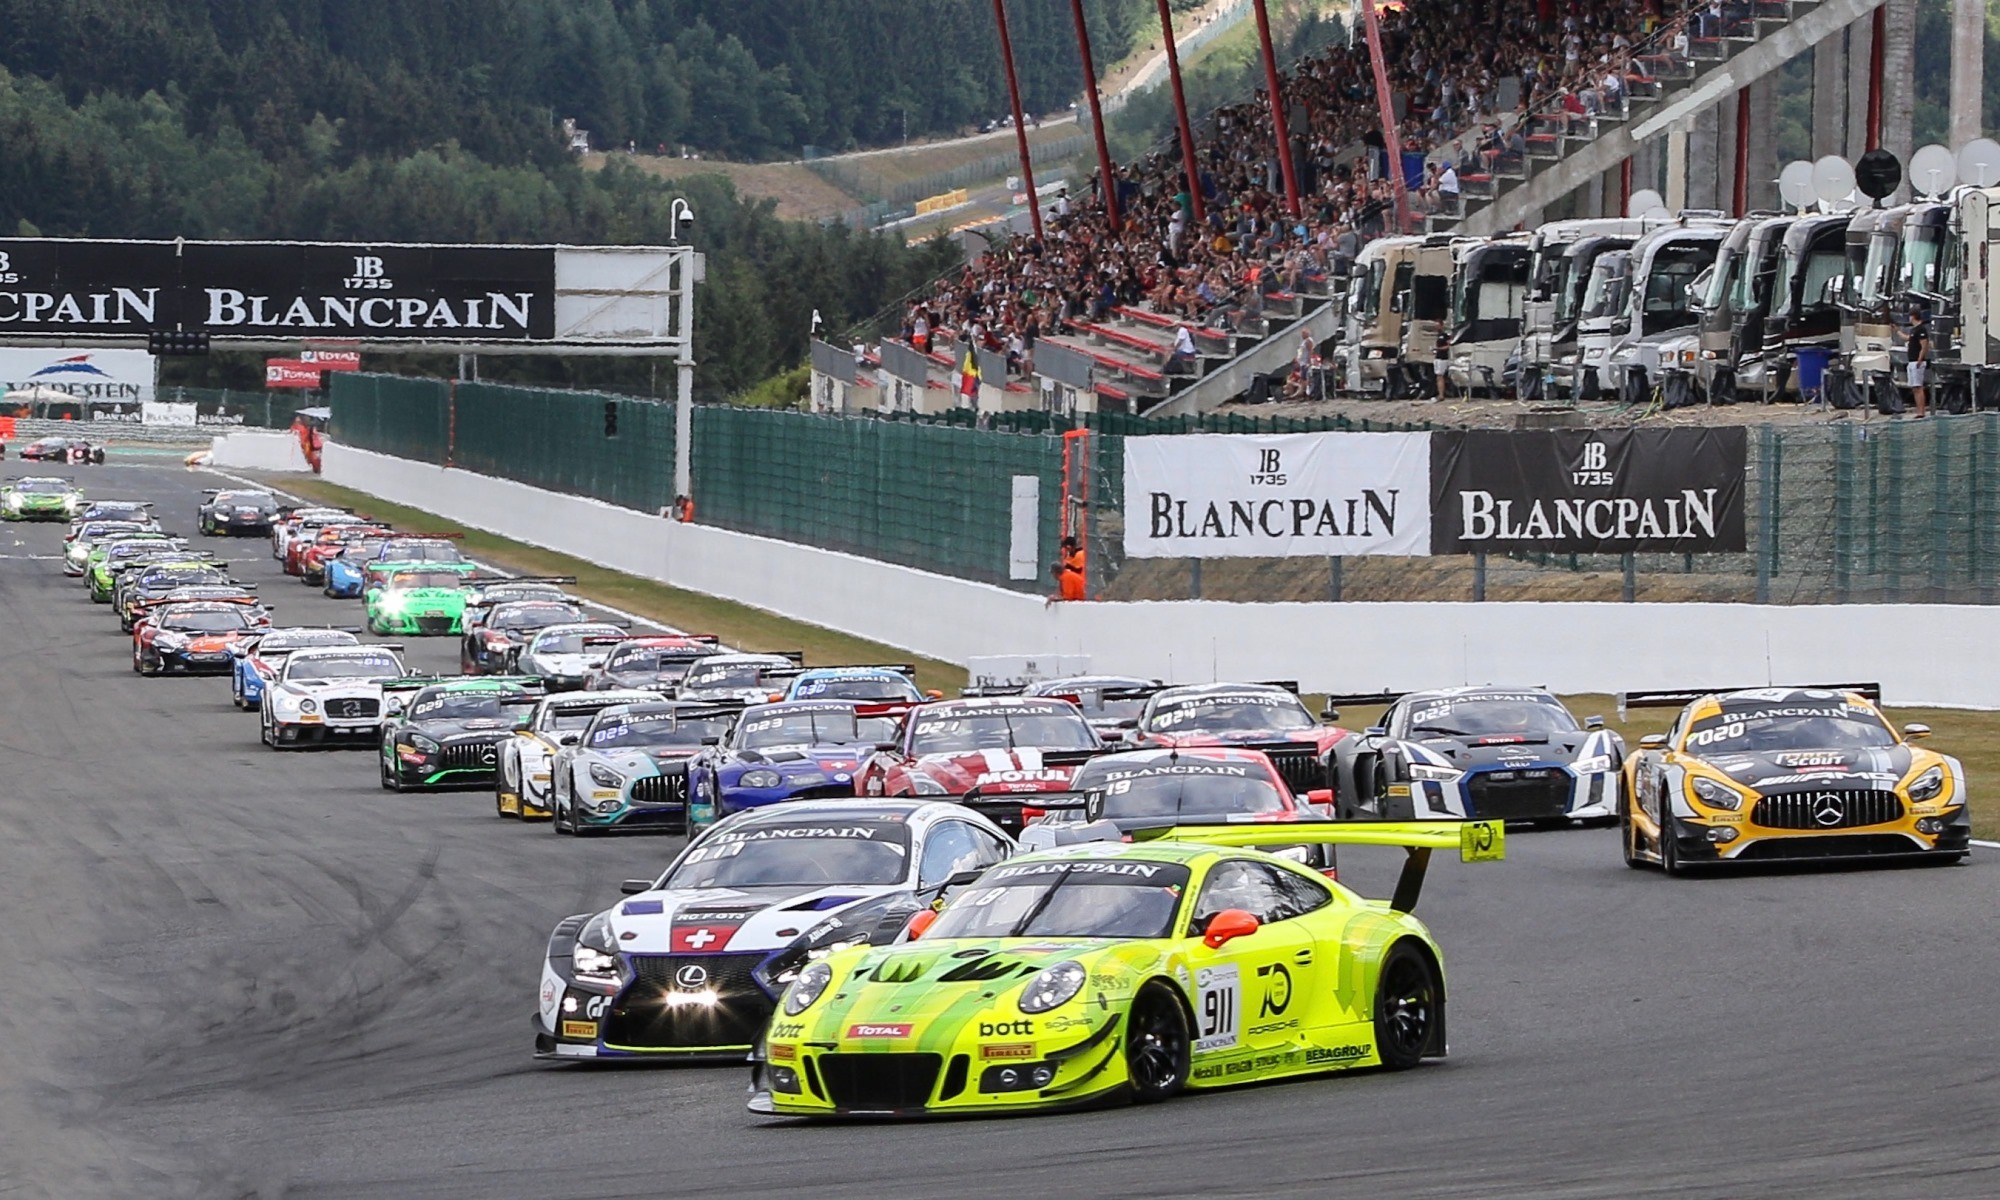 The start grid of the 24 Hours of Spa